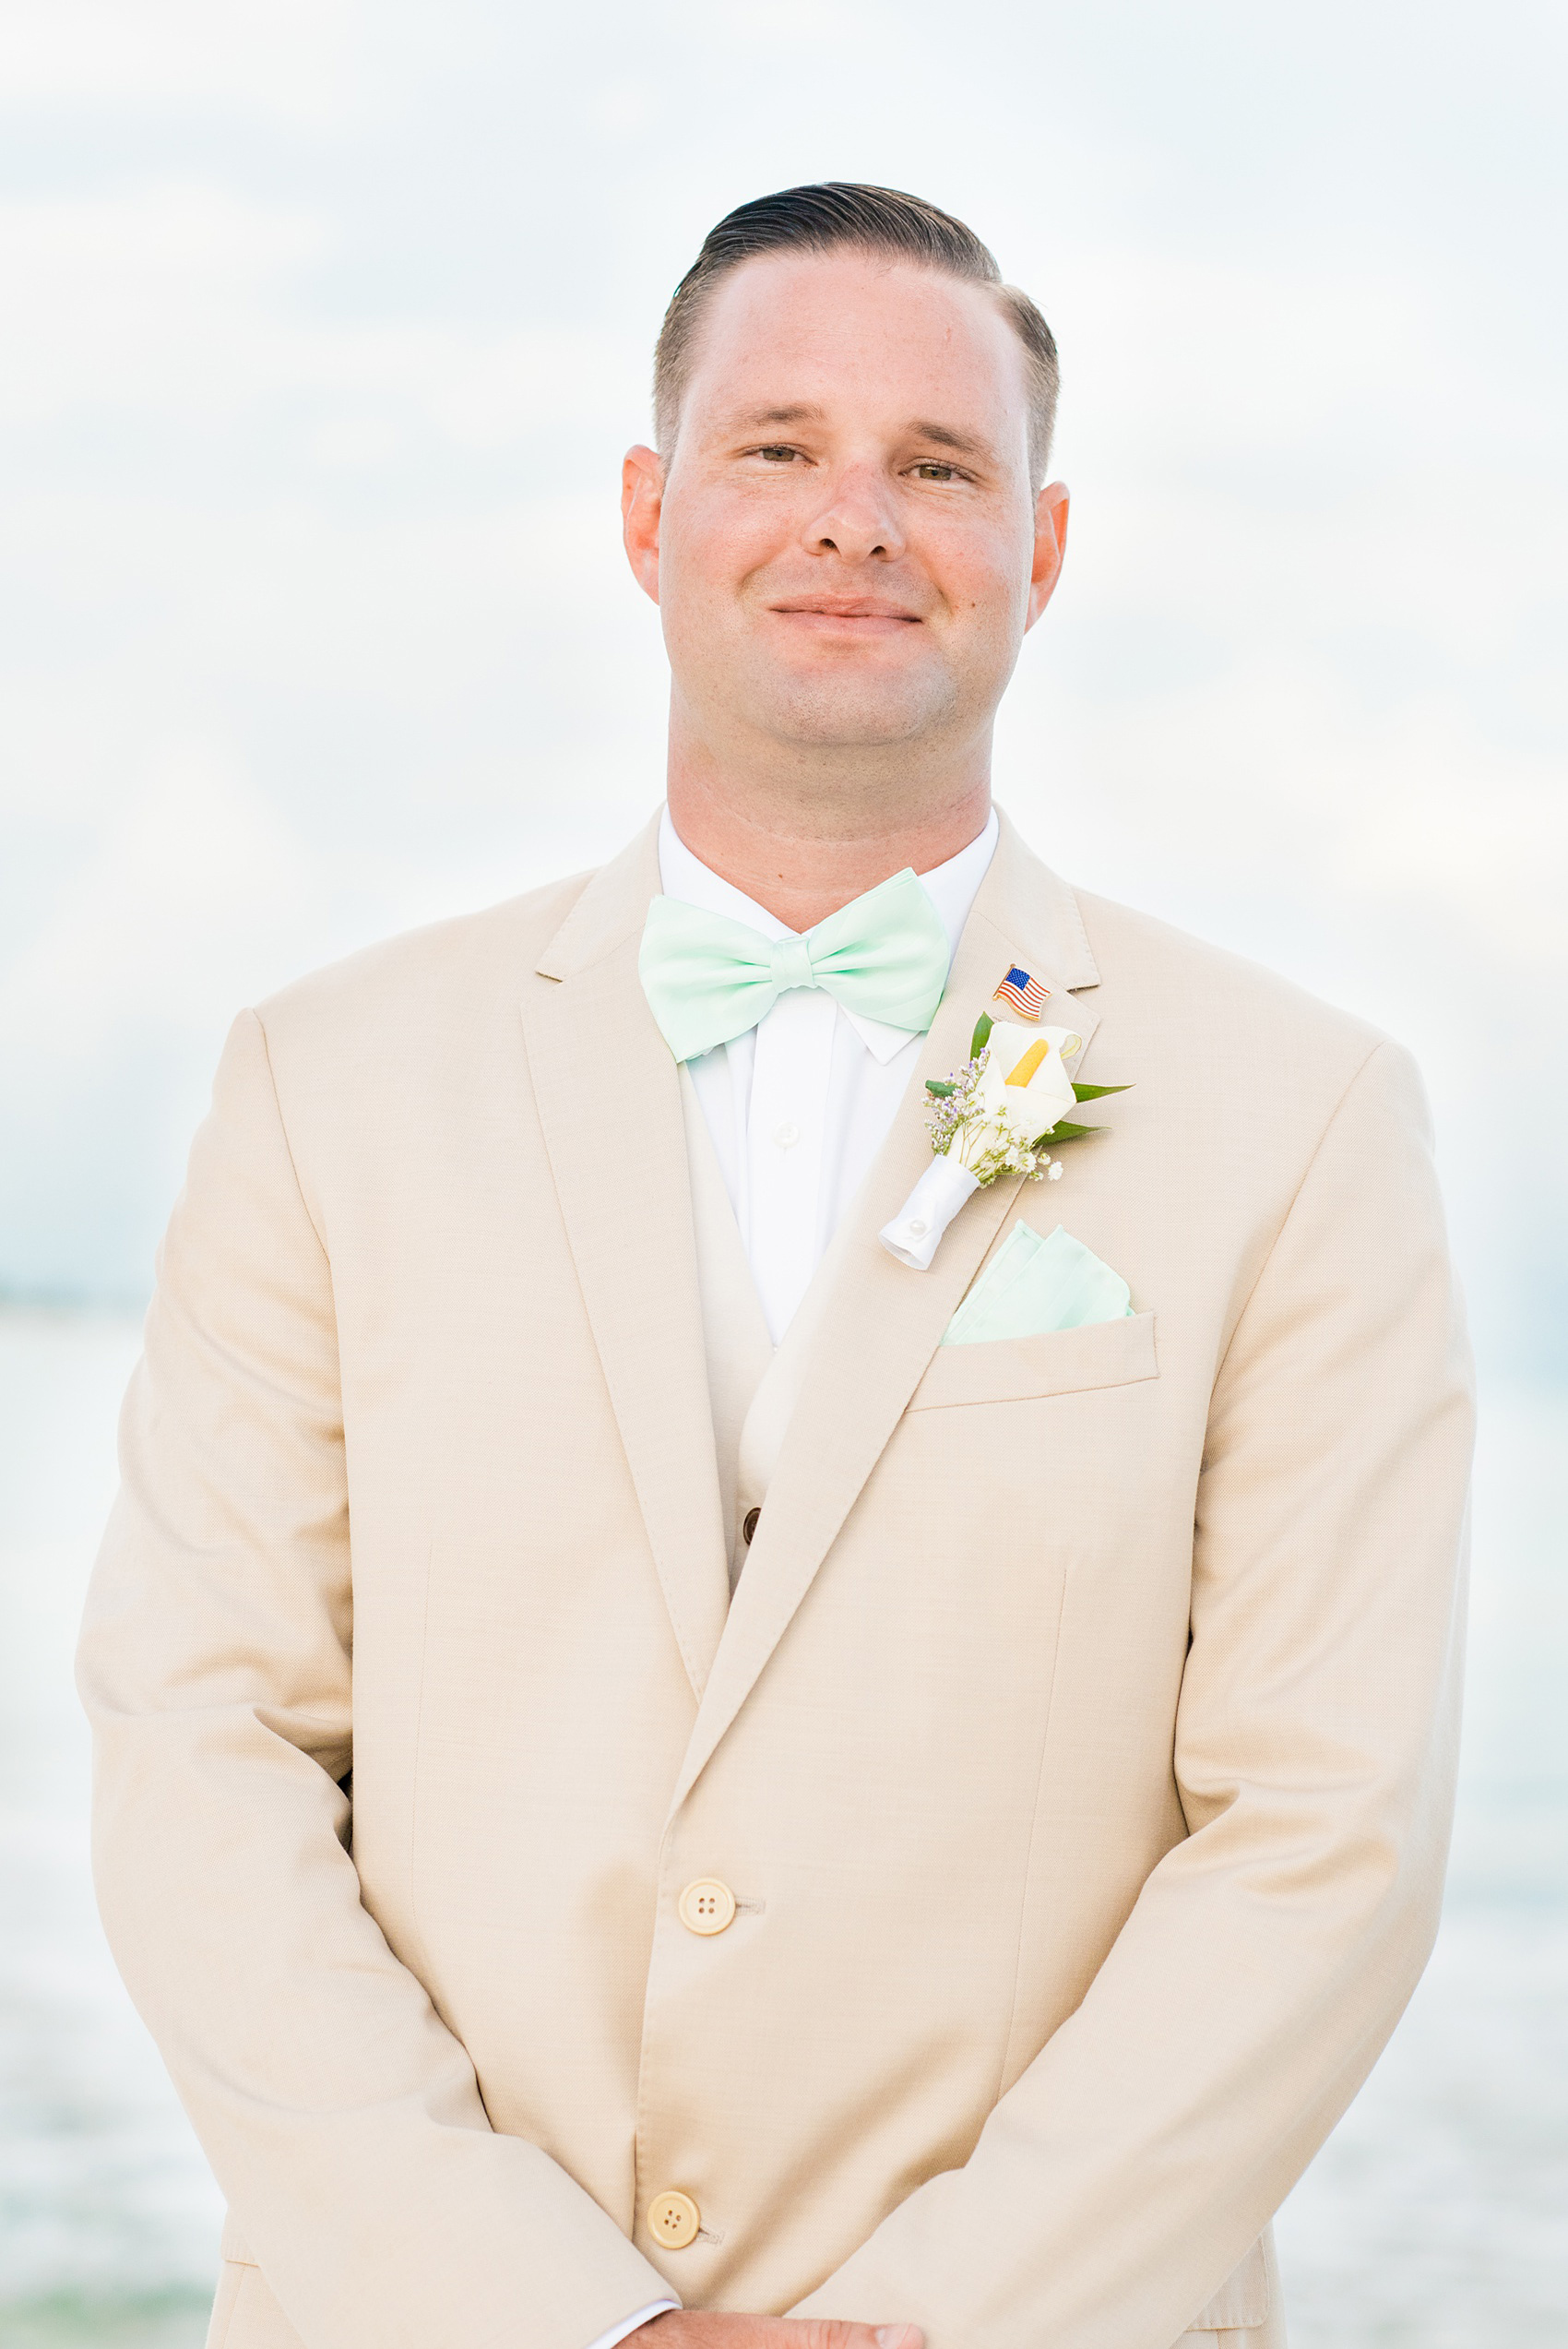 Mikkel Paige Photography photos from a wedding at Grand Paraiso, Mexico, Playa del Carmen Iberostar resort. Picture of the groom in a tan suit and light mint green bow tie.